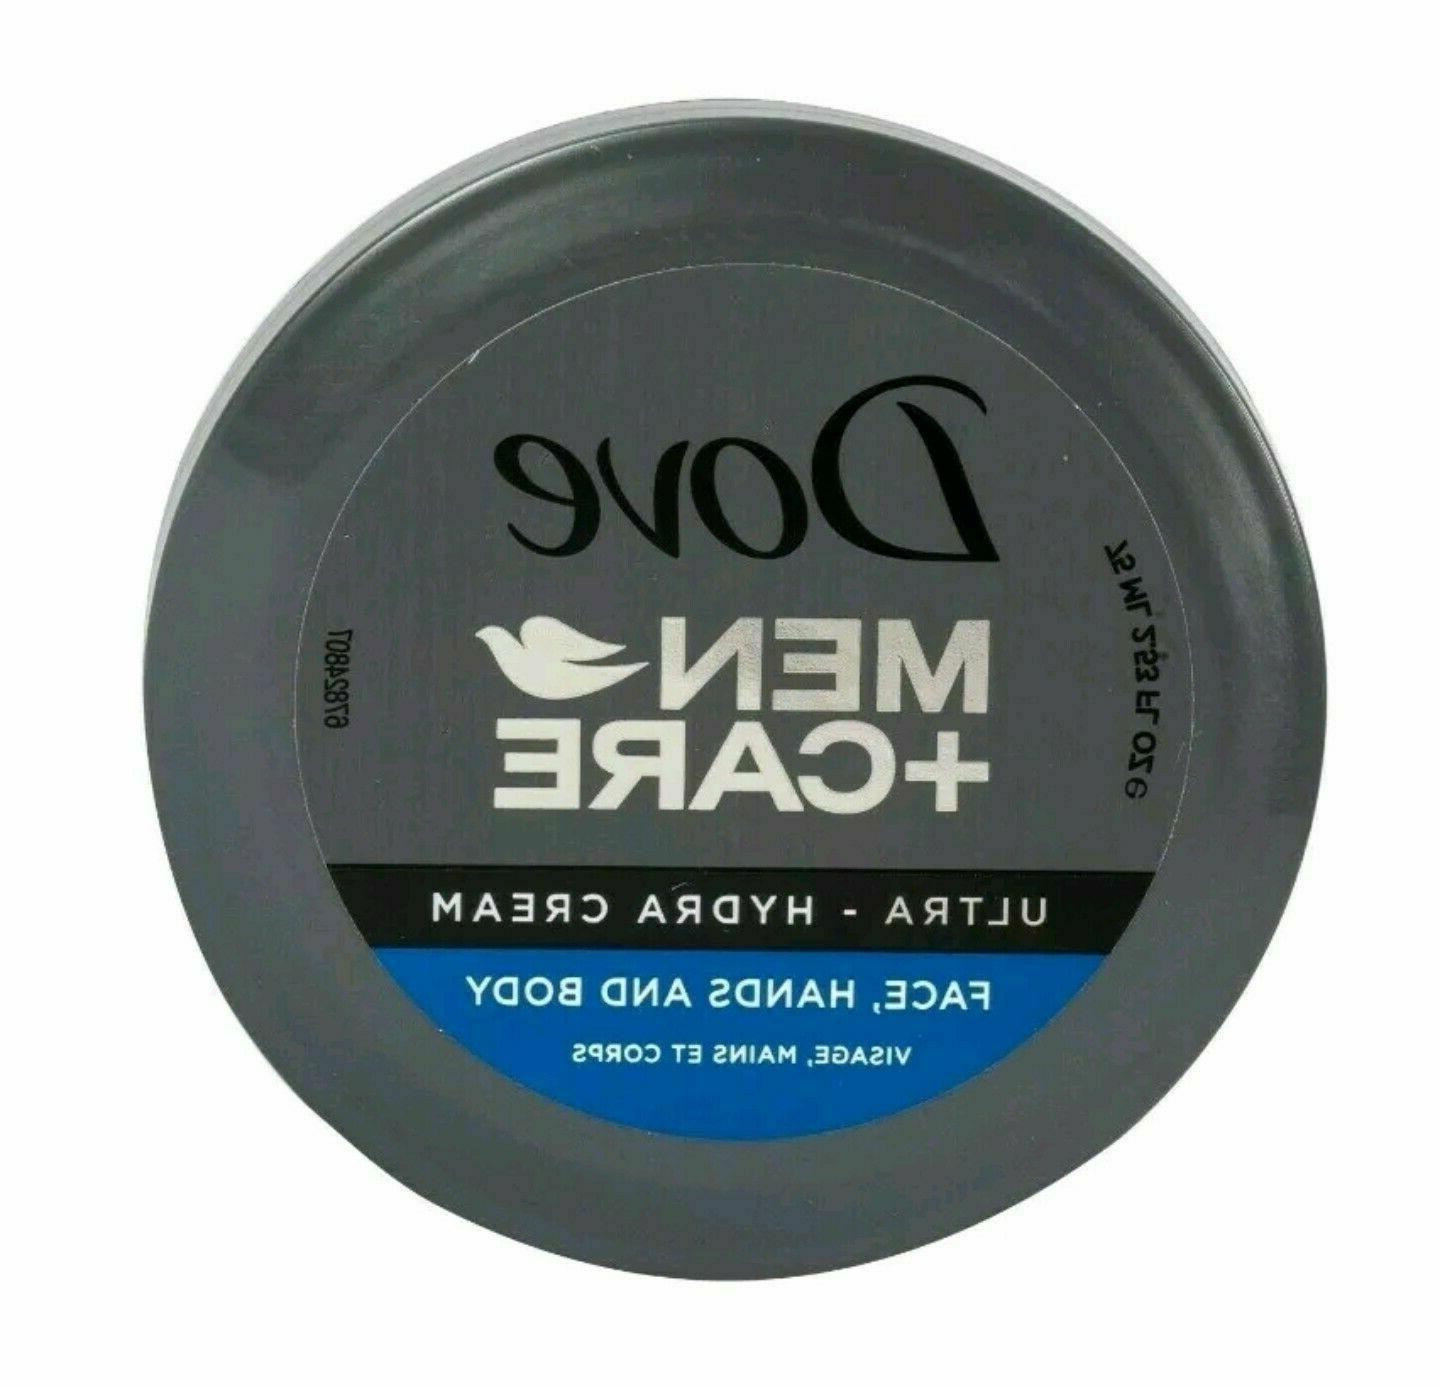 4 MEN + Ultra - Hydra Cream For Face, Hands Oz SEALED